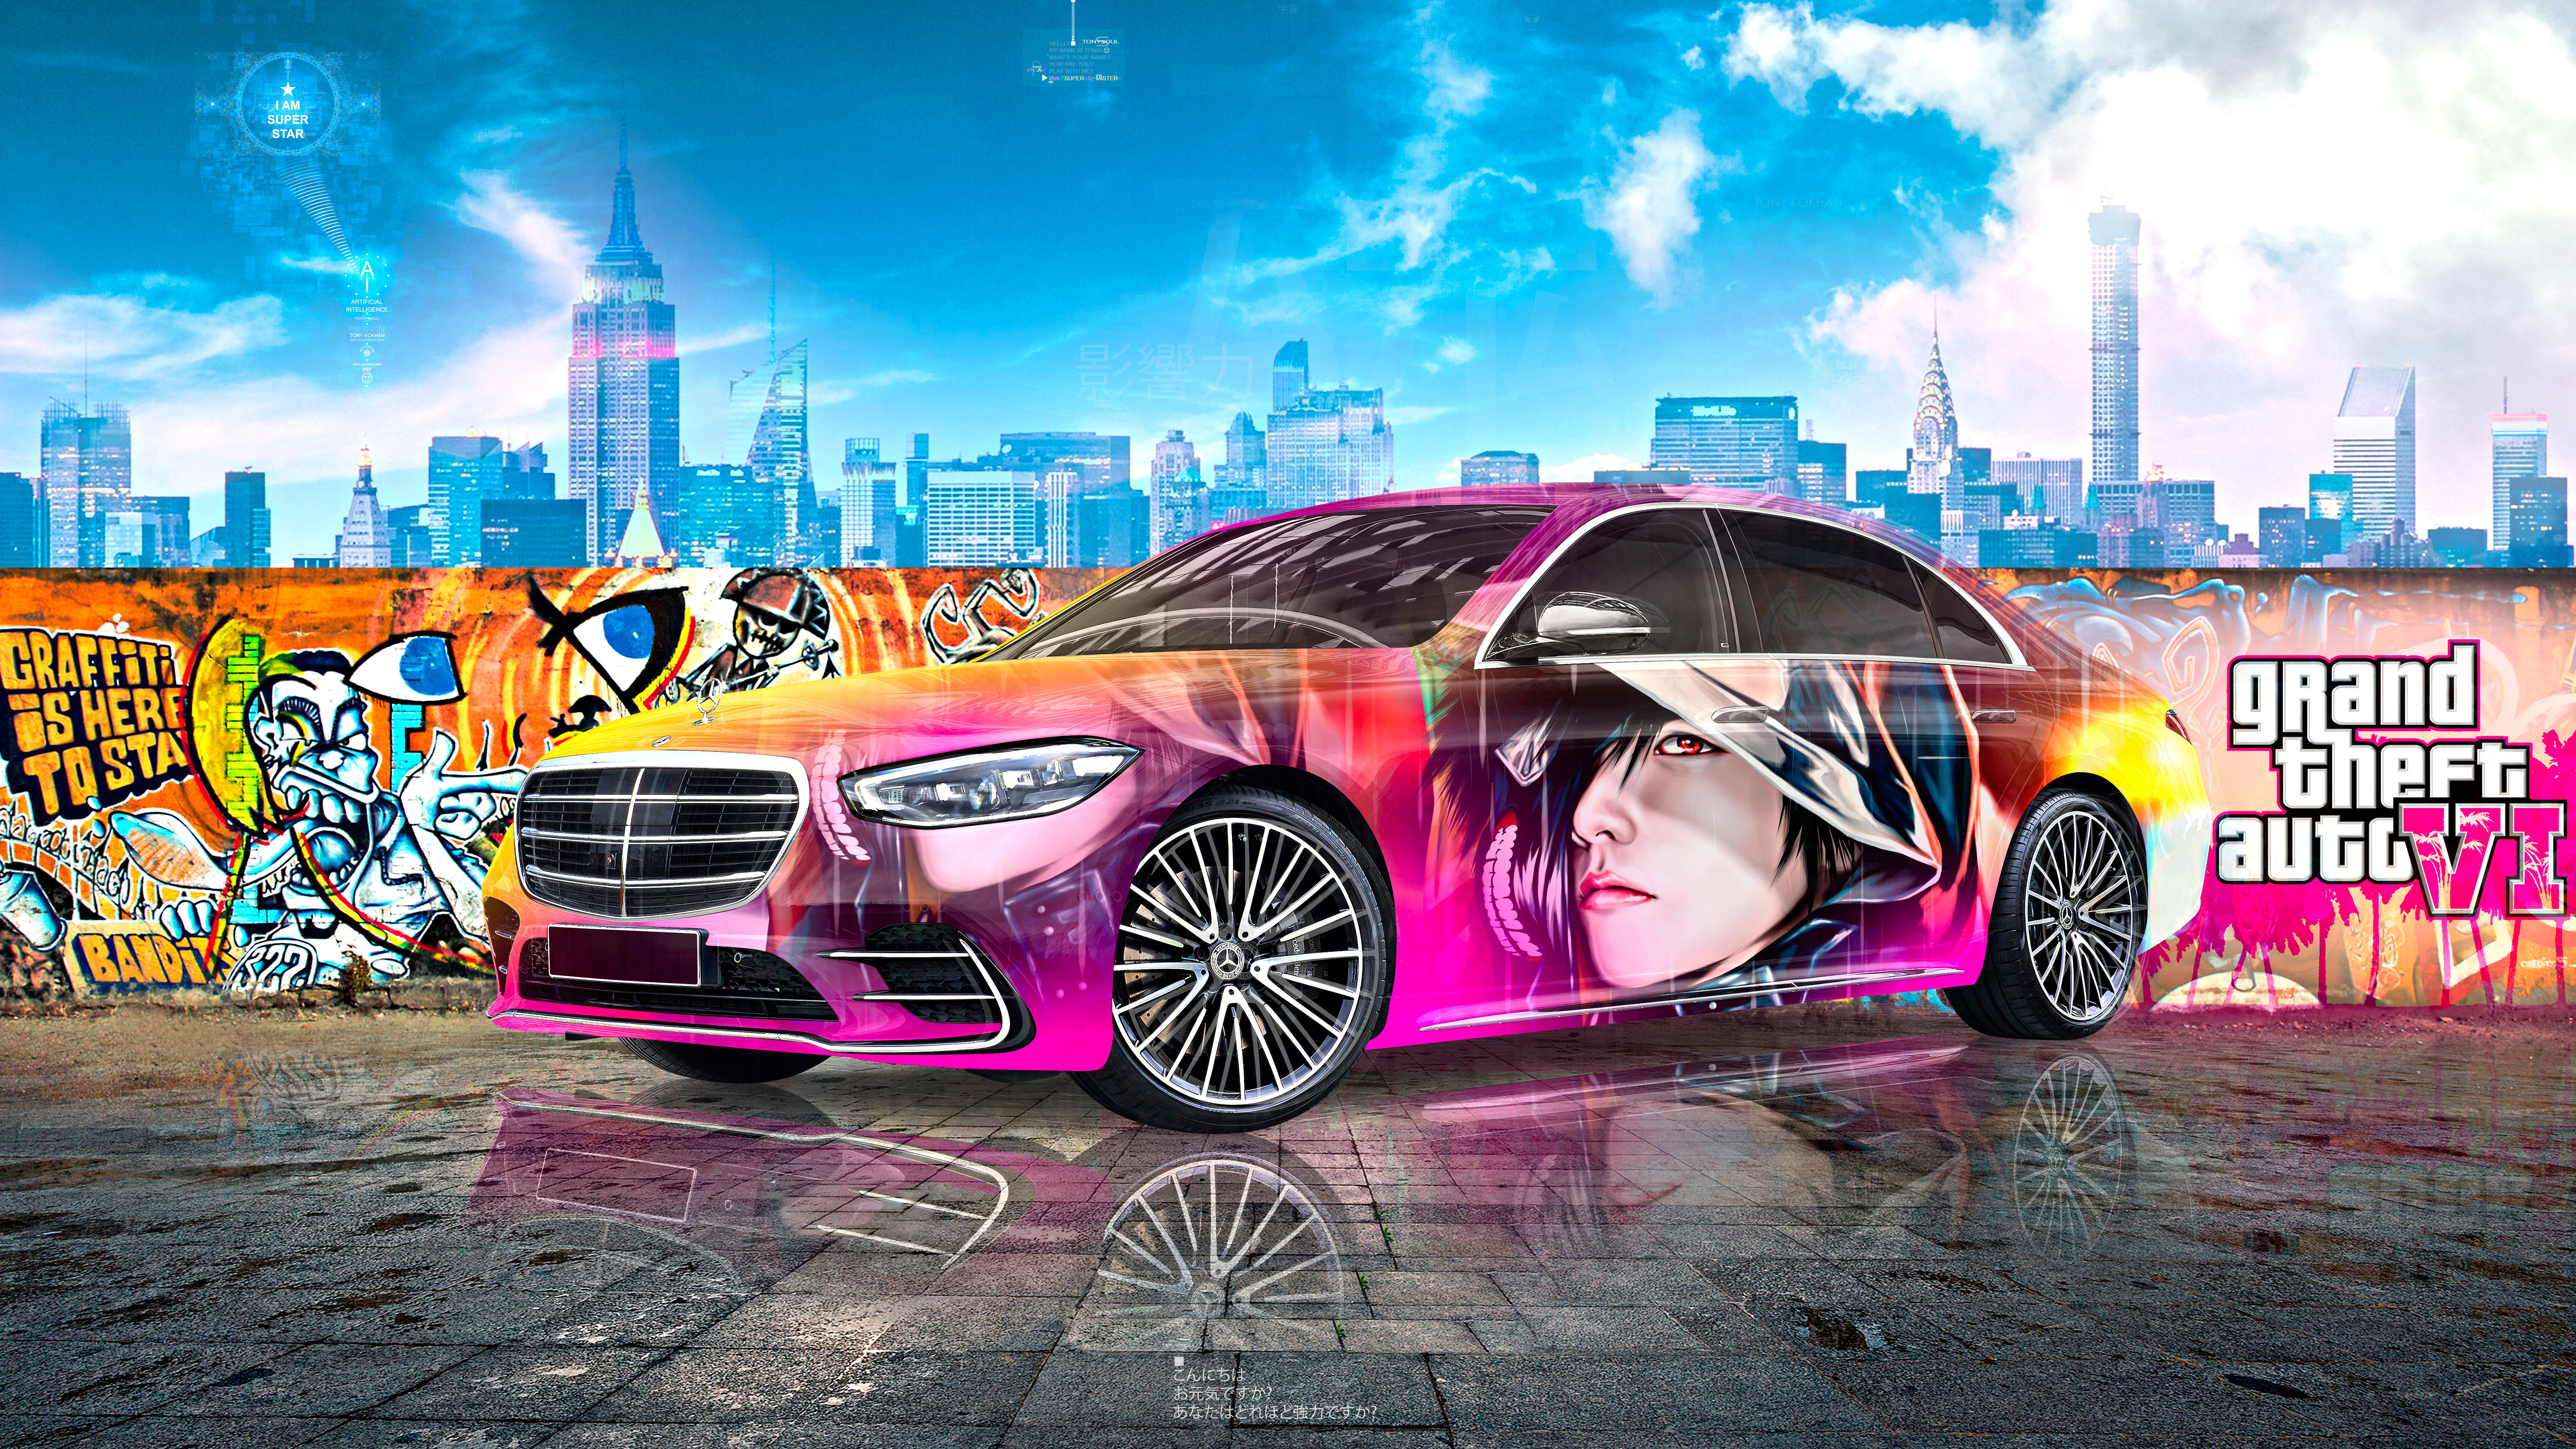 Mercedes-Benz-S-450-AMG-Super-Anime-Boy-Crystal-Influential-Soul-New-York-GTAVI-Artificial-Intelligence-Star-Car-2021-Multicolors-8K-Wallpapers-by-Tony-Kokhan-www.el-tony.com-image